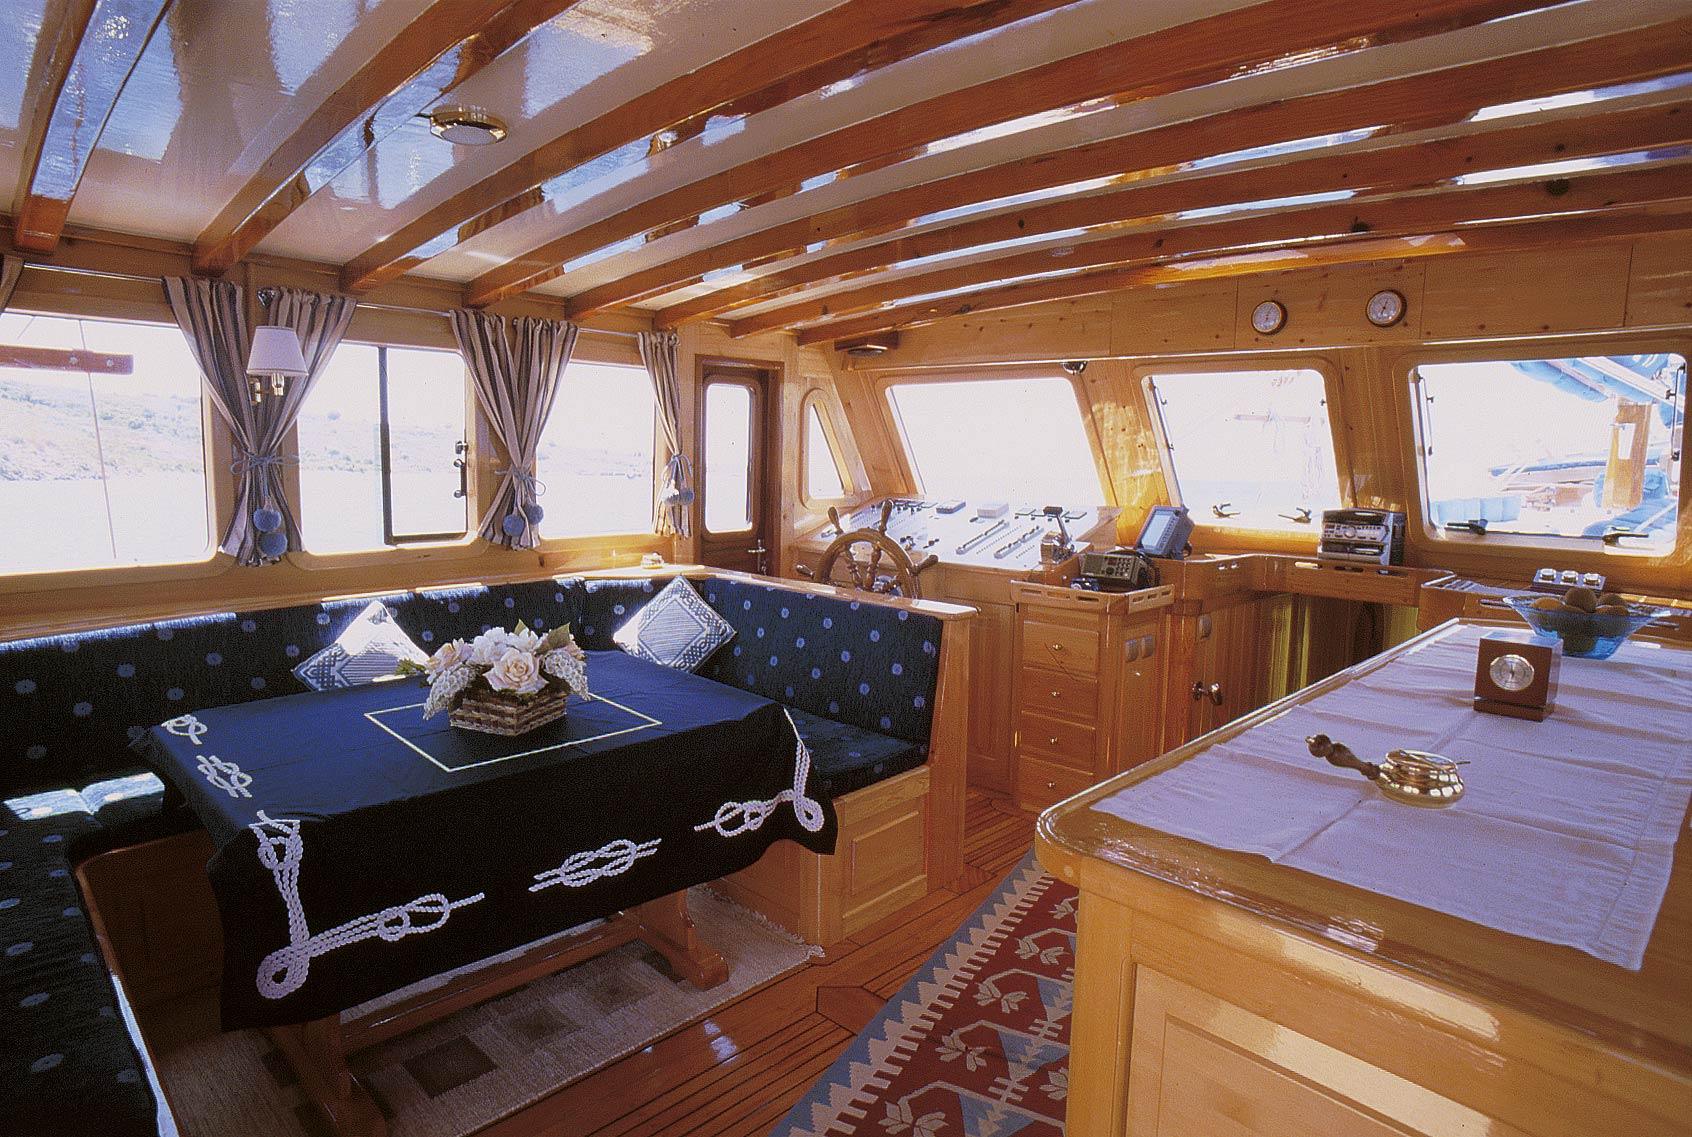 XENOS II,STANDARD GULETS, Yachts for Rent, Yacht Charter, Yacht Rental